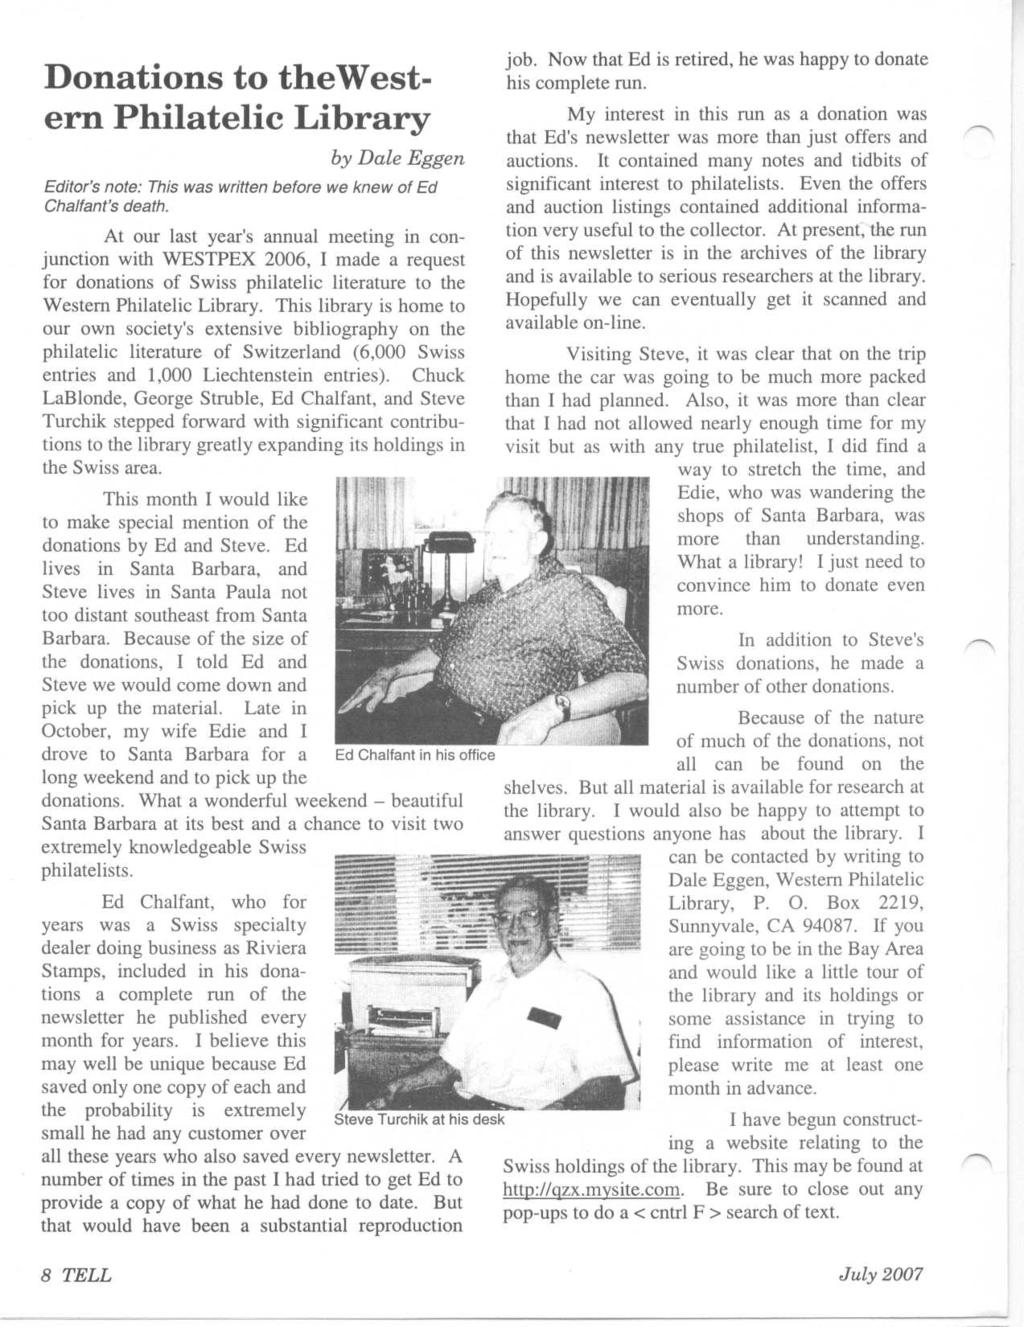 Donations to the Western Philatelic Library by Dale Eggen Editor's note : This was written before we knew of Ed Chalfant's death.